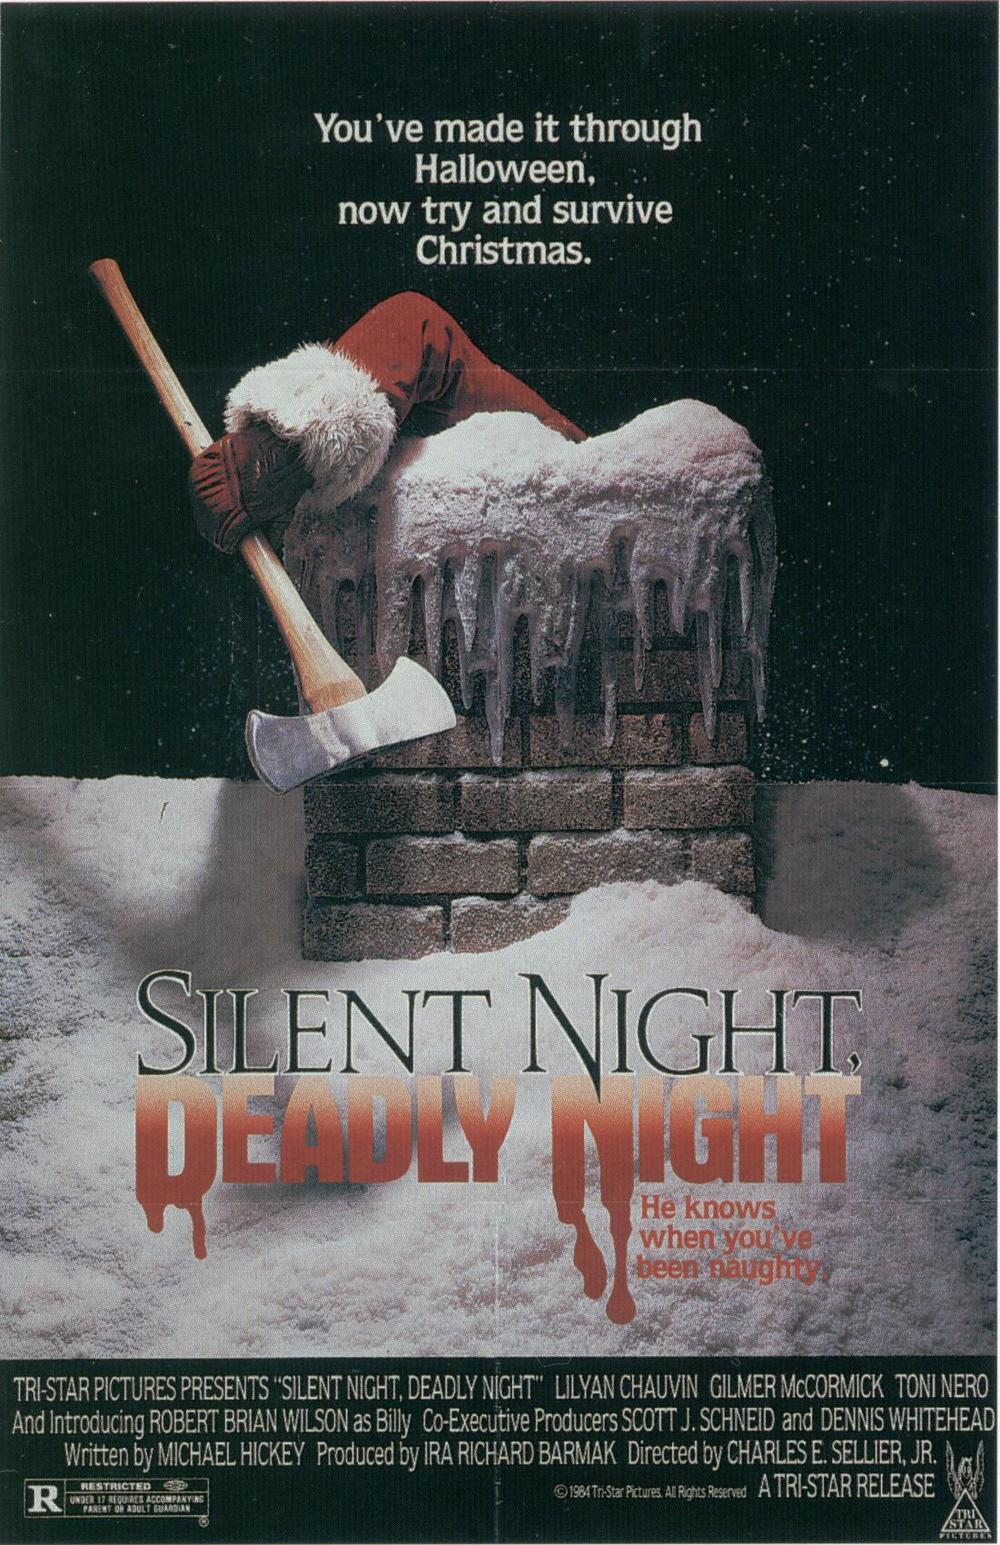 silent-night-deadly-night-poster.jpg